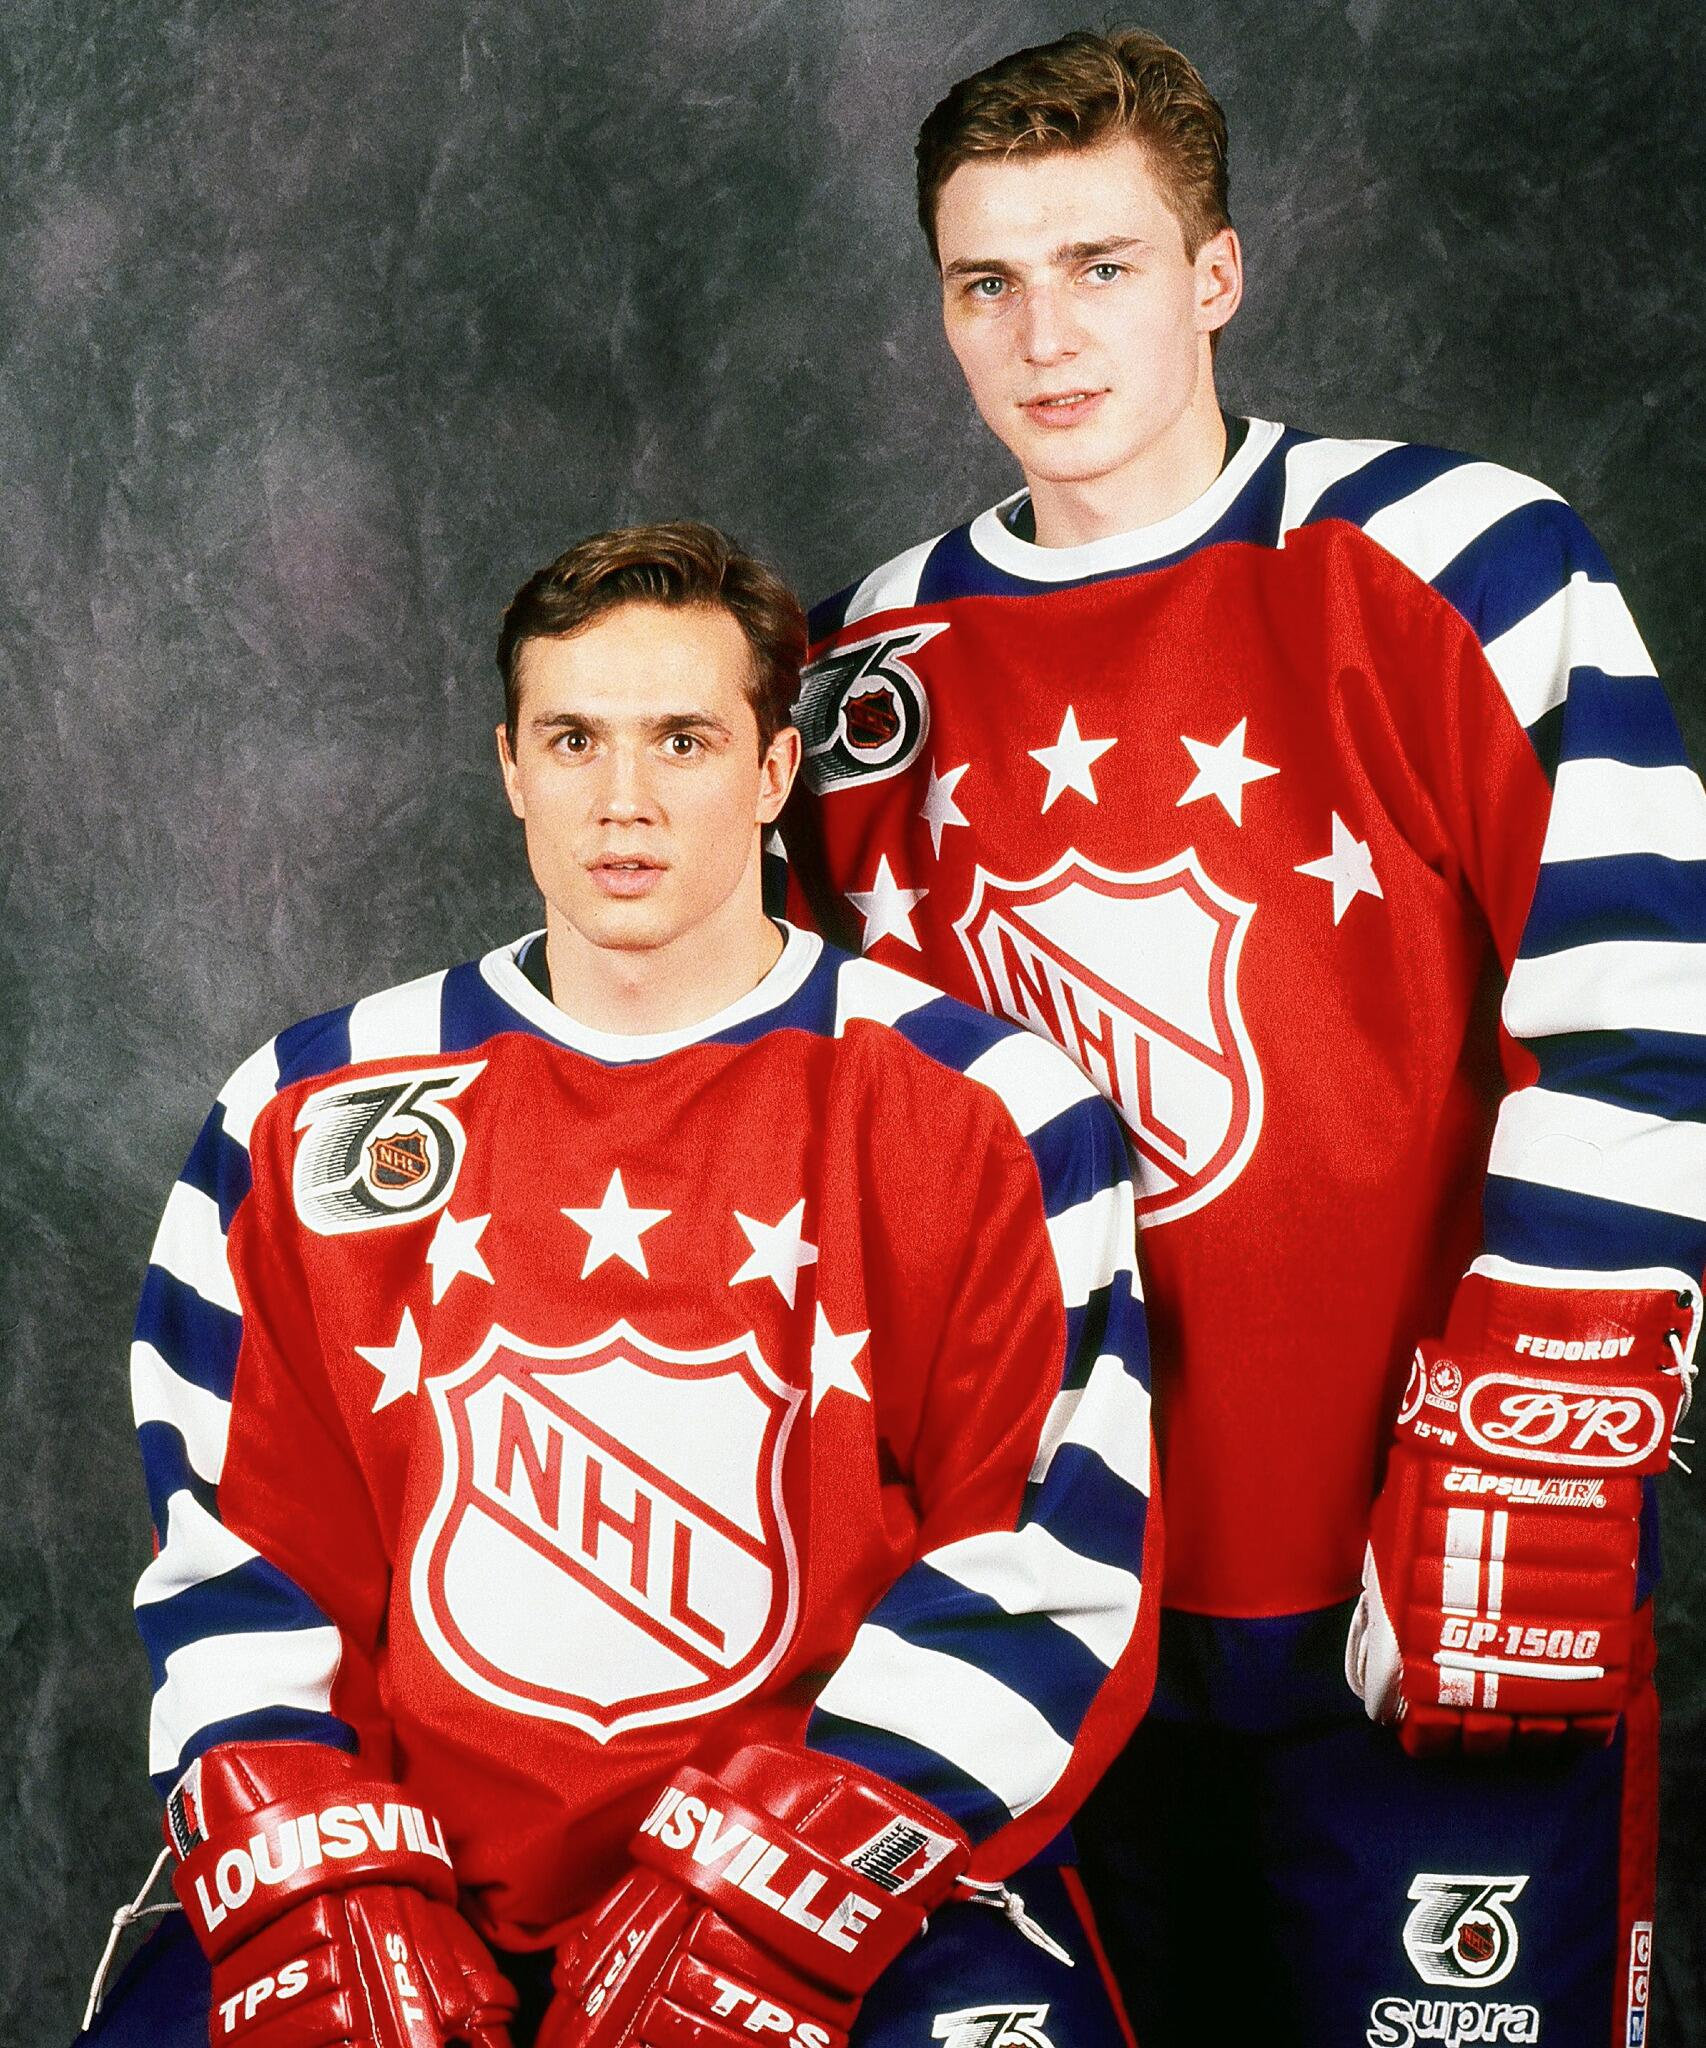 RT @DetroitRedWings: #TBT: Check out these two studs at 1992 All-Star weekend; Fedorov won 'Fastest Skater' & had two assists in the game. http://t.co/gDrQypY5bh